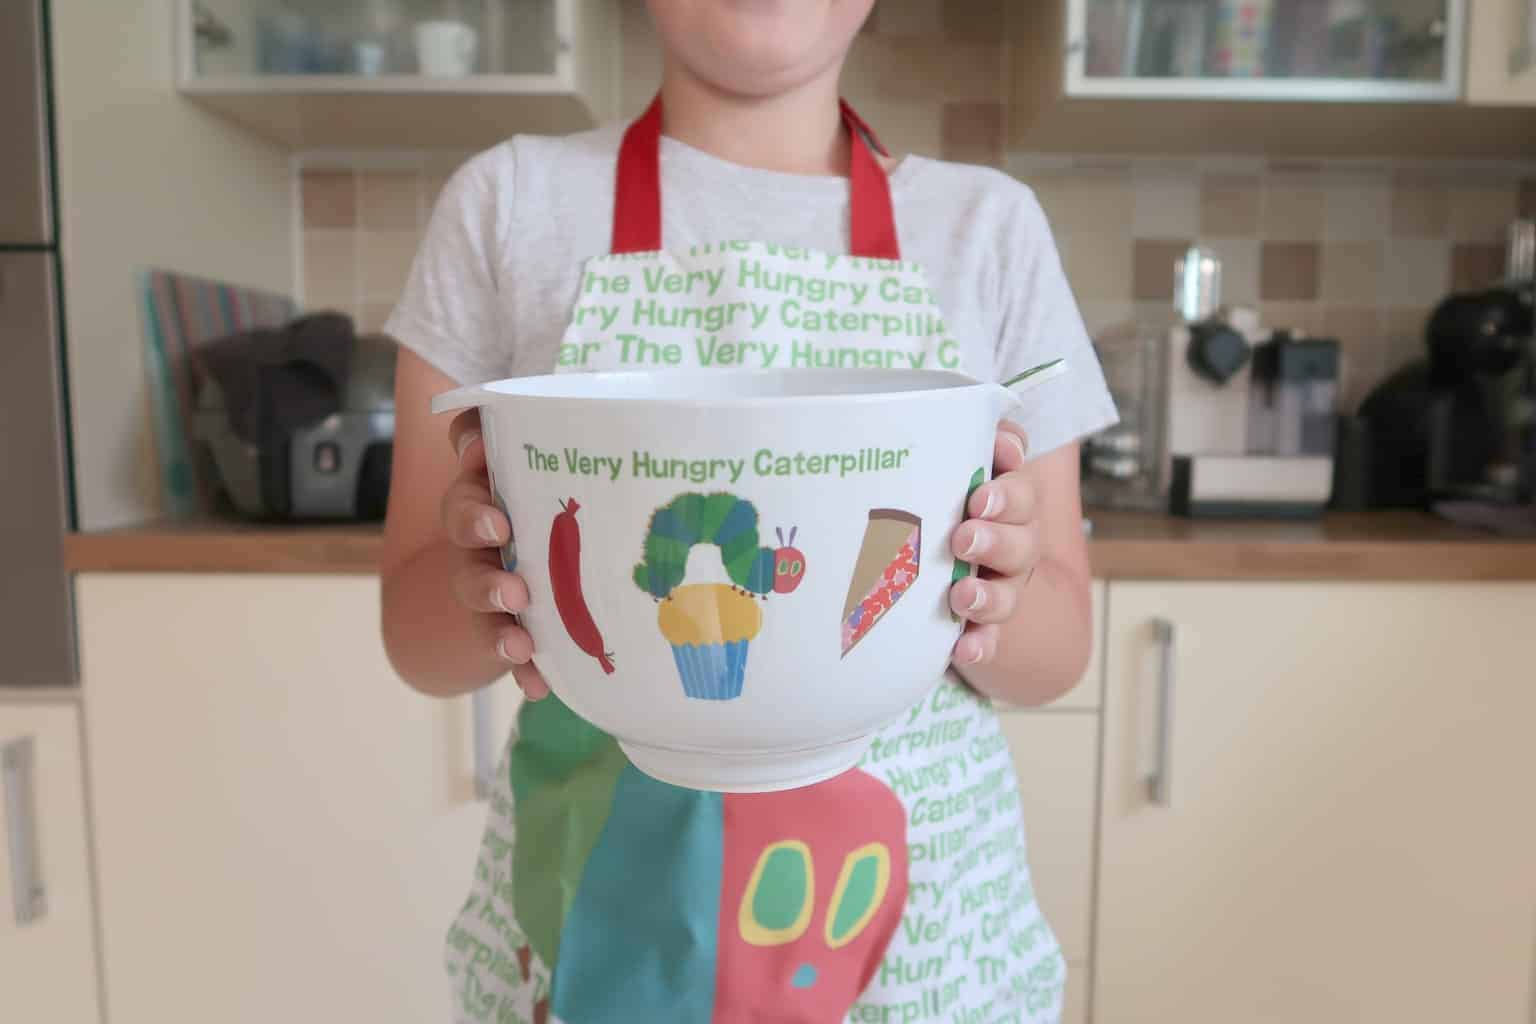 Top tips for family meal times